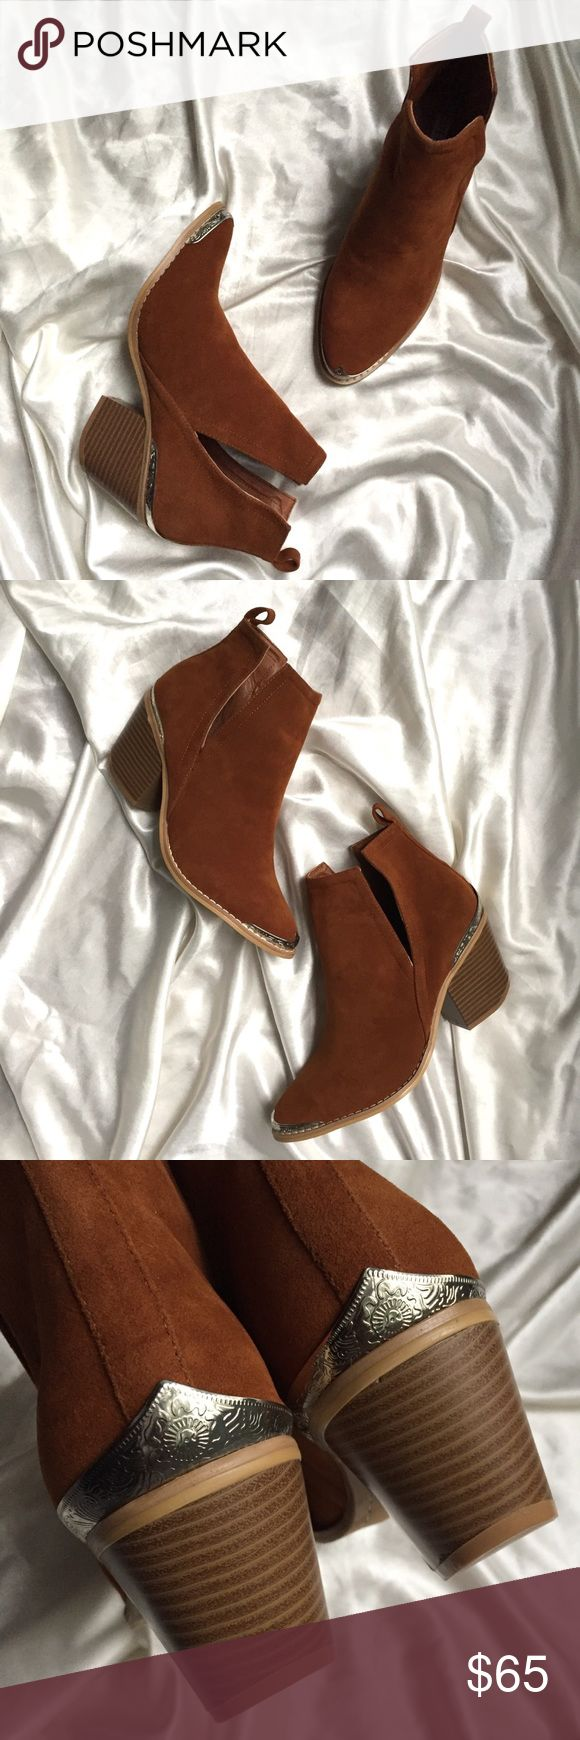 """Cognac Camel Side Cutout Western Ankle Booties These ankle booties feature silver tone etched metal hardware at the toe and heel, side v cutouts, and a pull up tab on the heel. Pair them with your skinny jeans, leggings, shorts, or dresses. Perfect for any season. Versatile color. Boho gypsy festival chic style. Heel height is approximately 3"""". New in box boutique brand booties. The Luxe Bohemian Shoes Ankle Boots & Booties"""